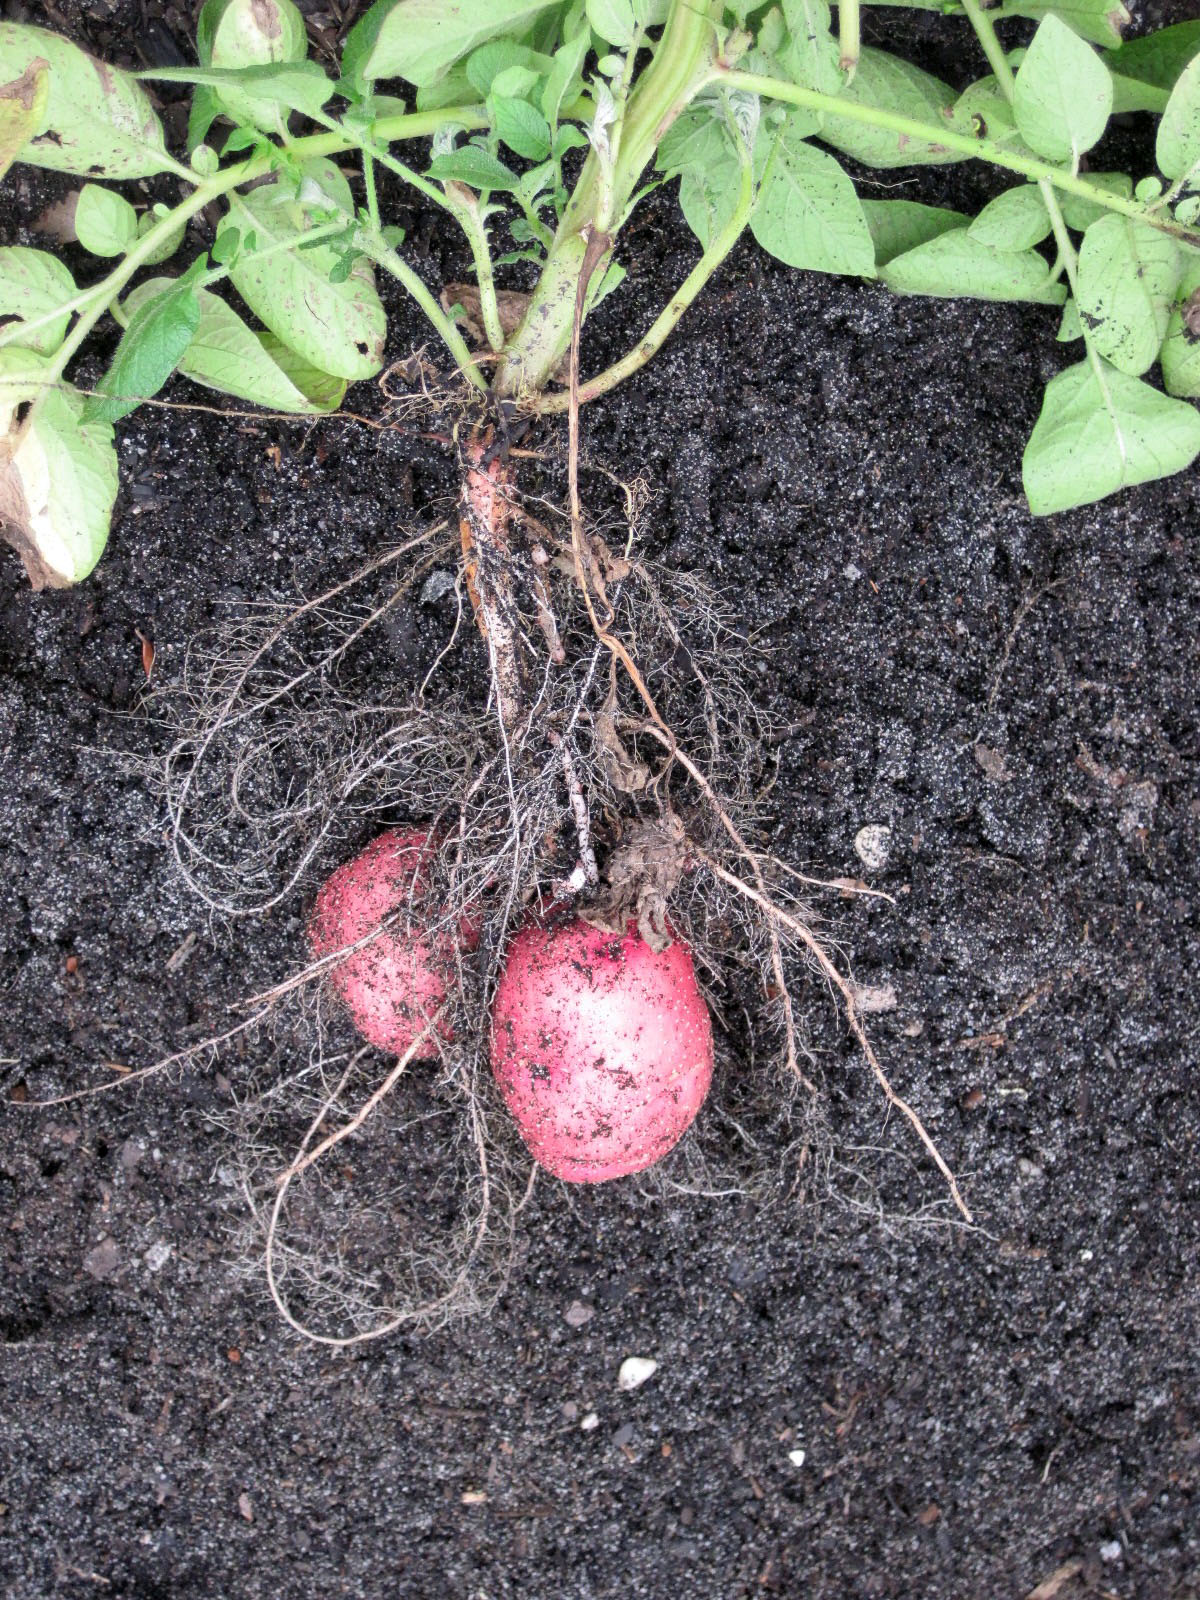 At Bang Elementary, Red potato plant